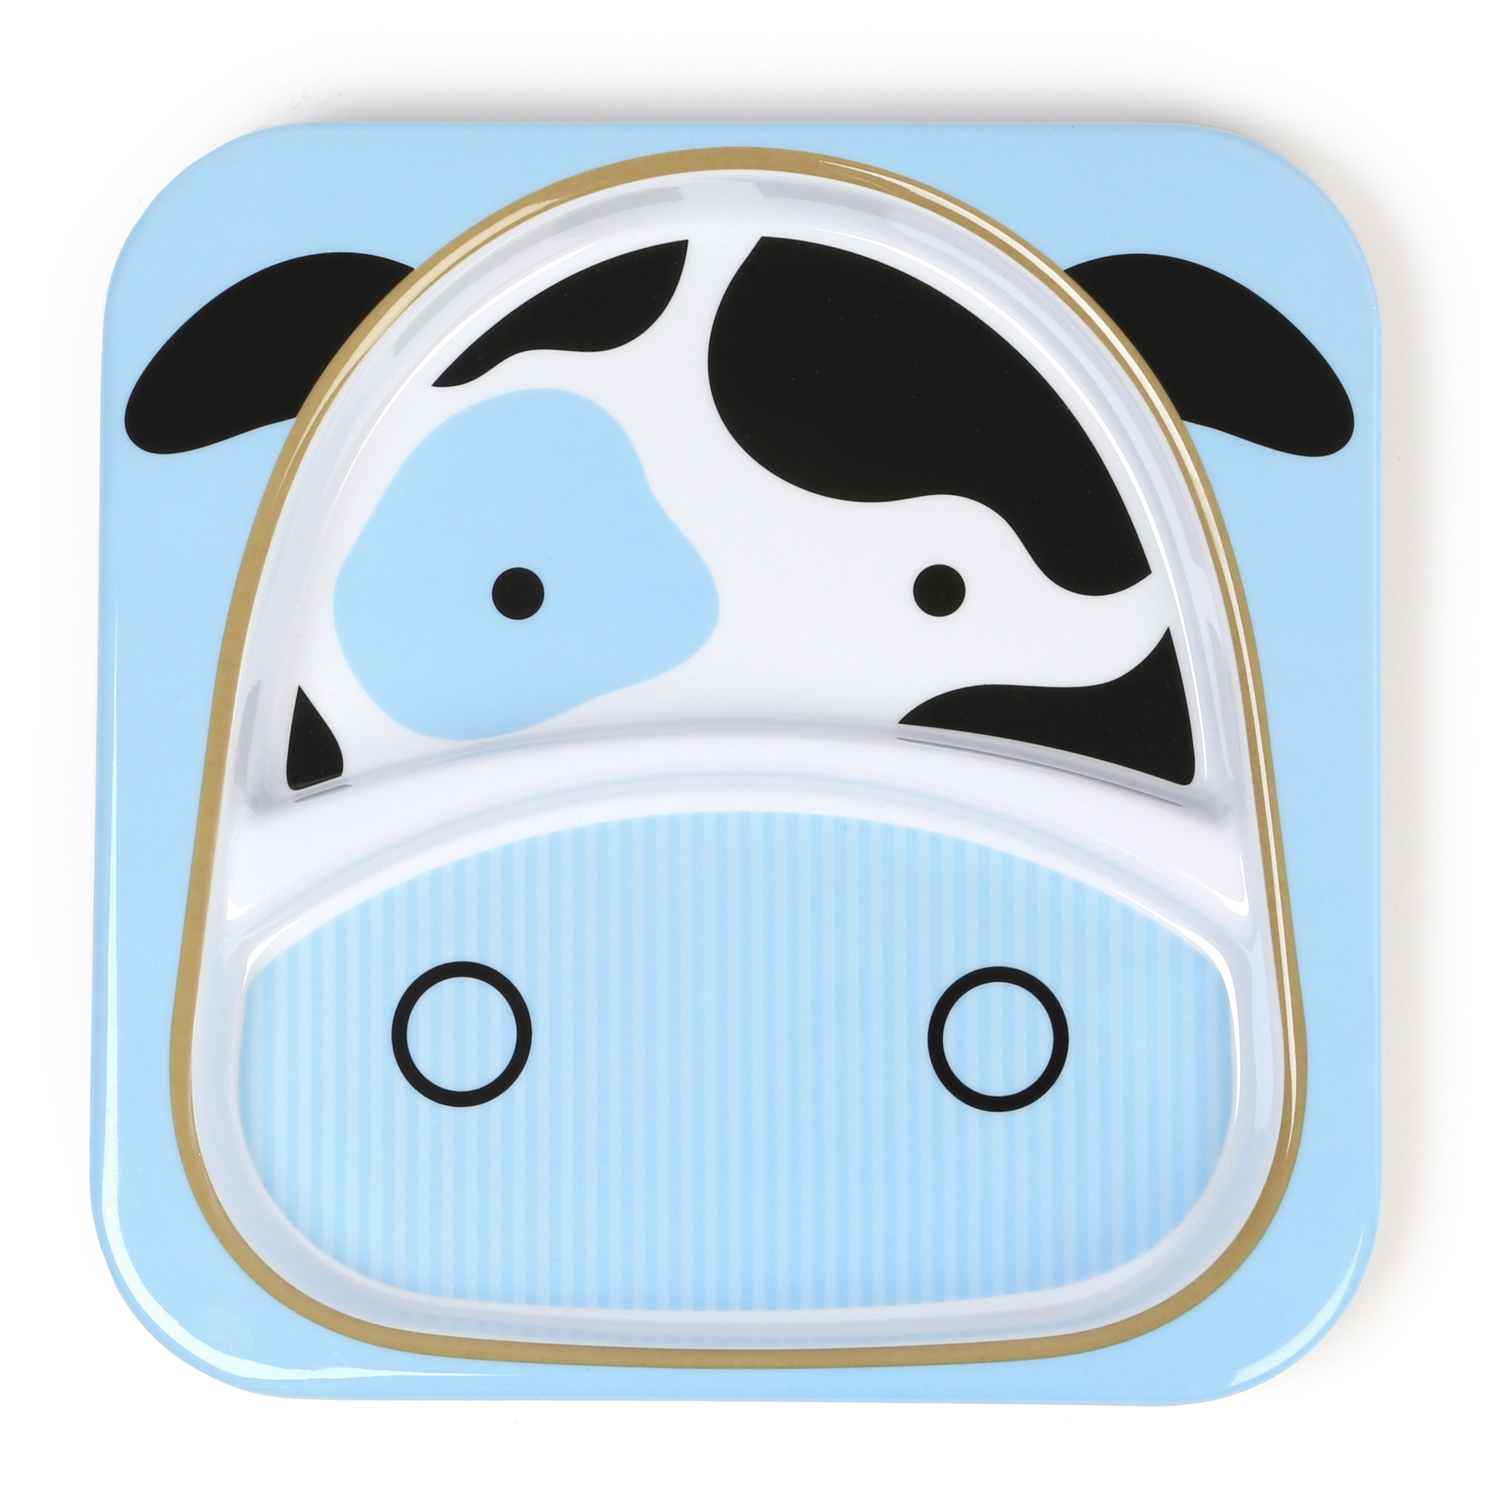 Skip Hop: Zoo Divided Plate - Cow image